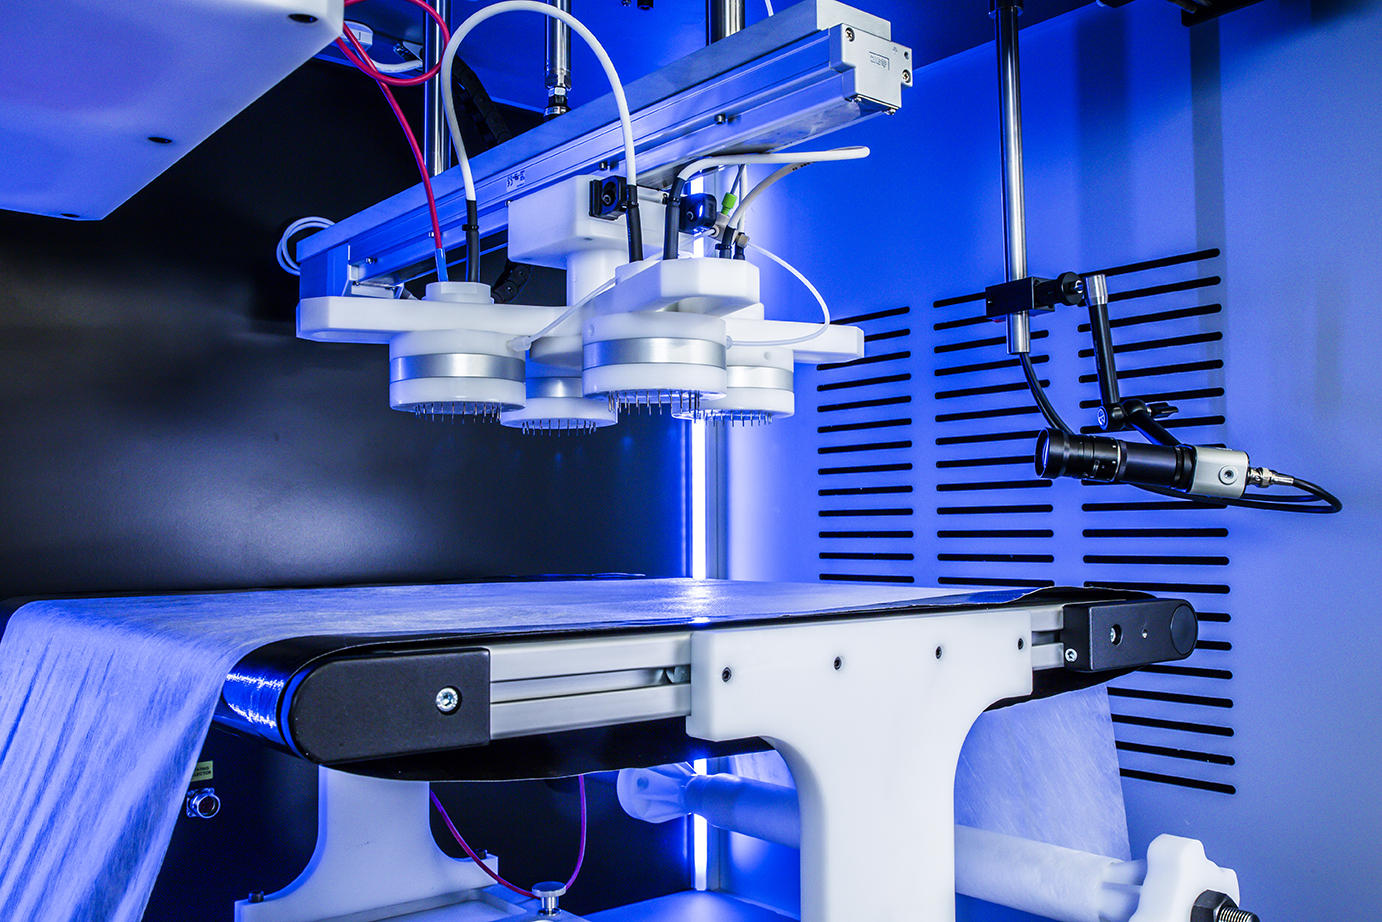 Bioinicia LE-500 electrospinning machine